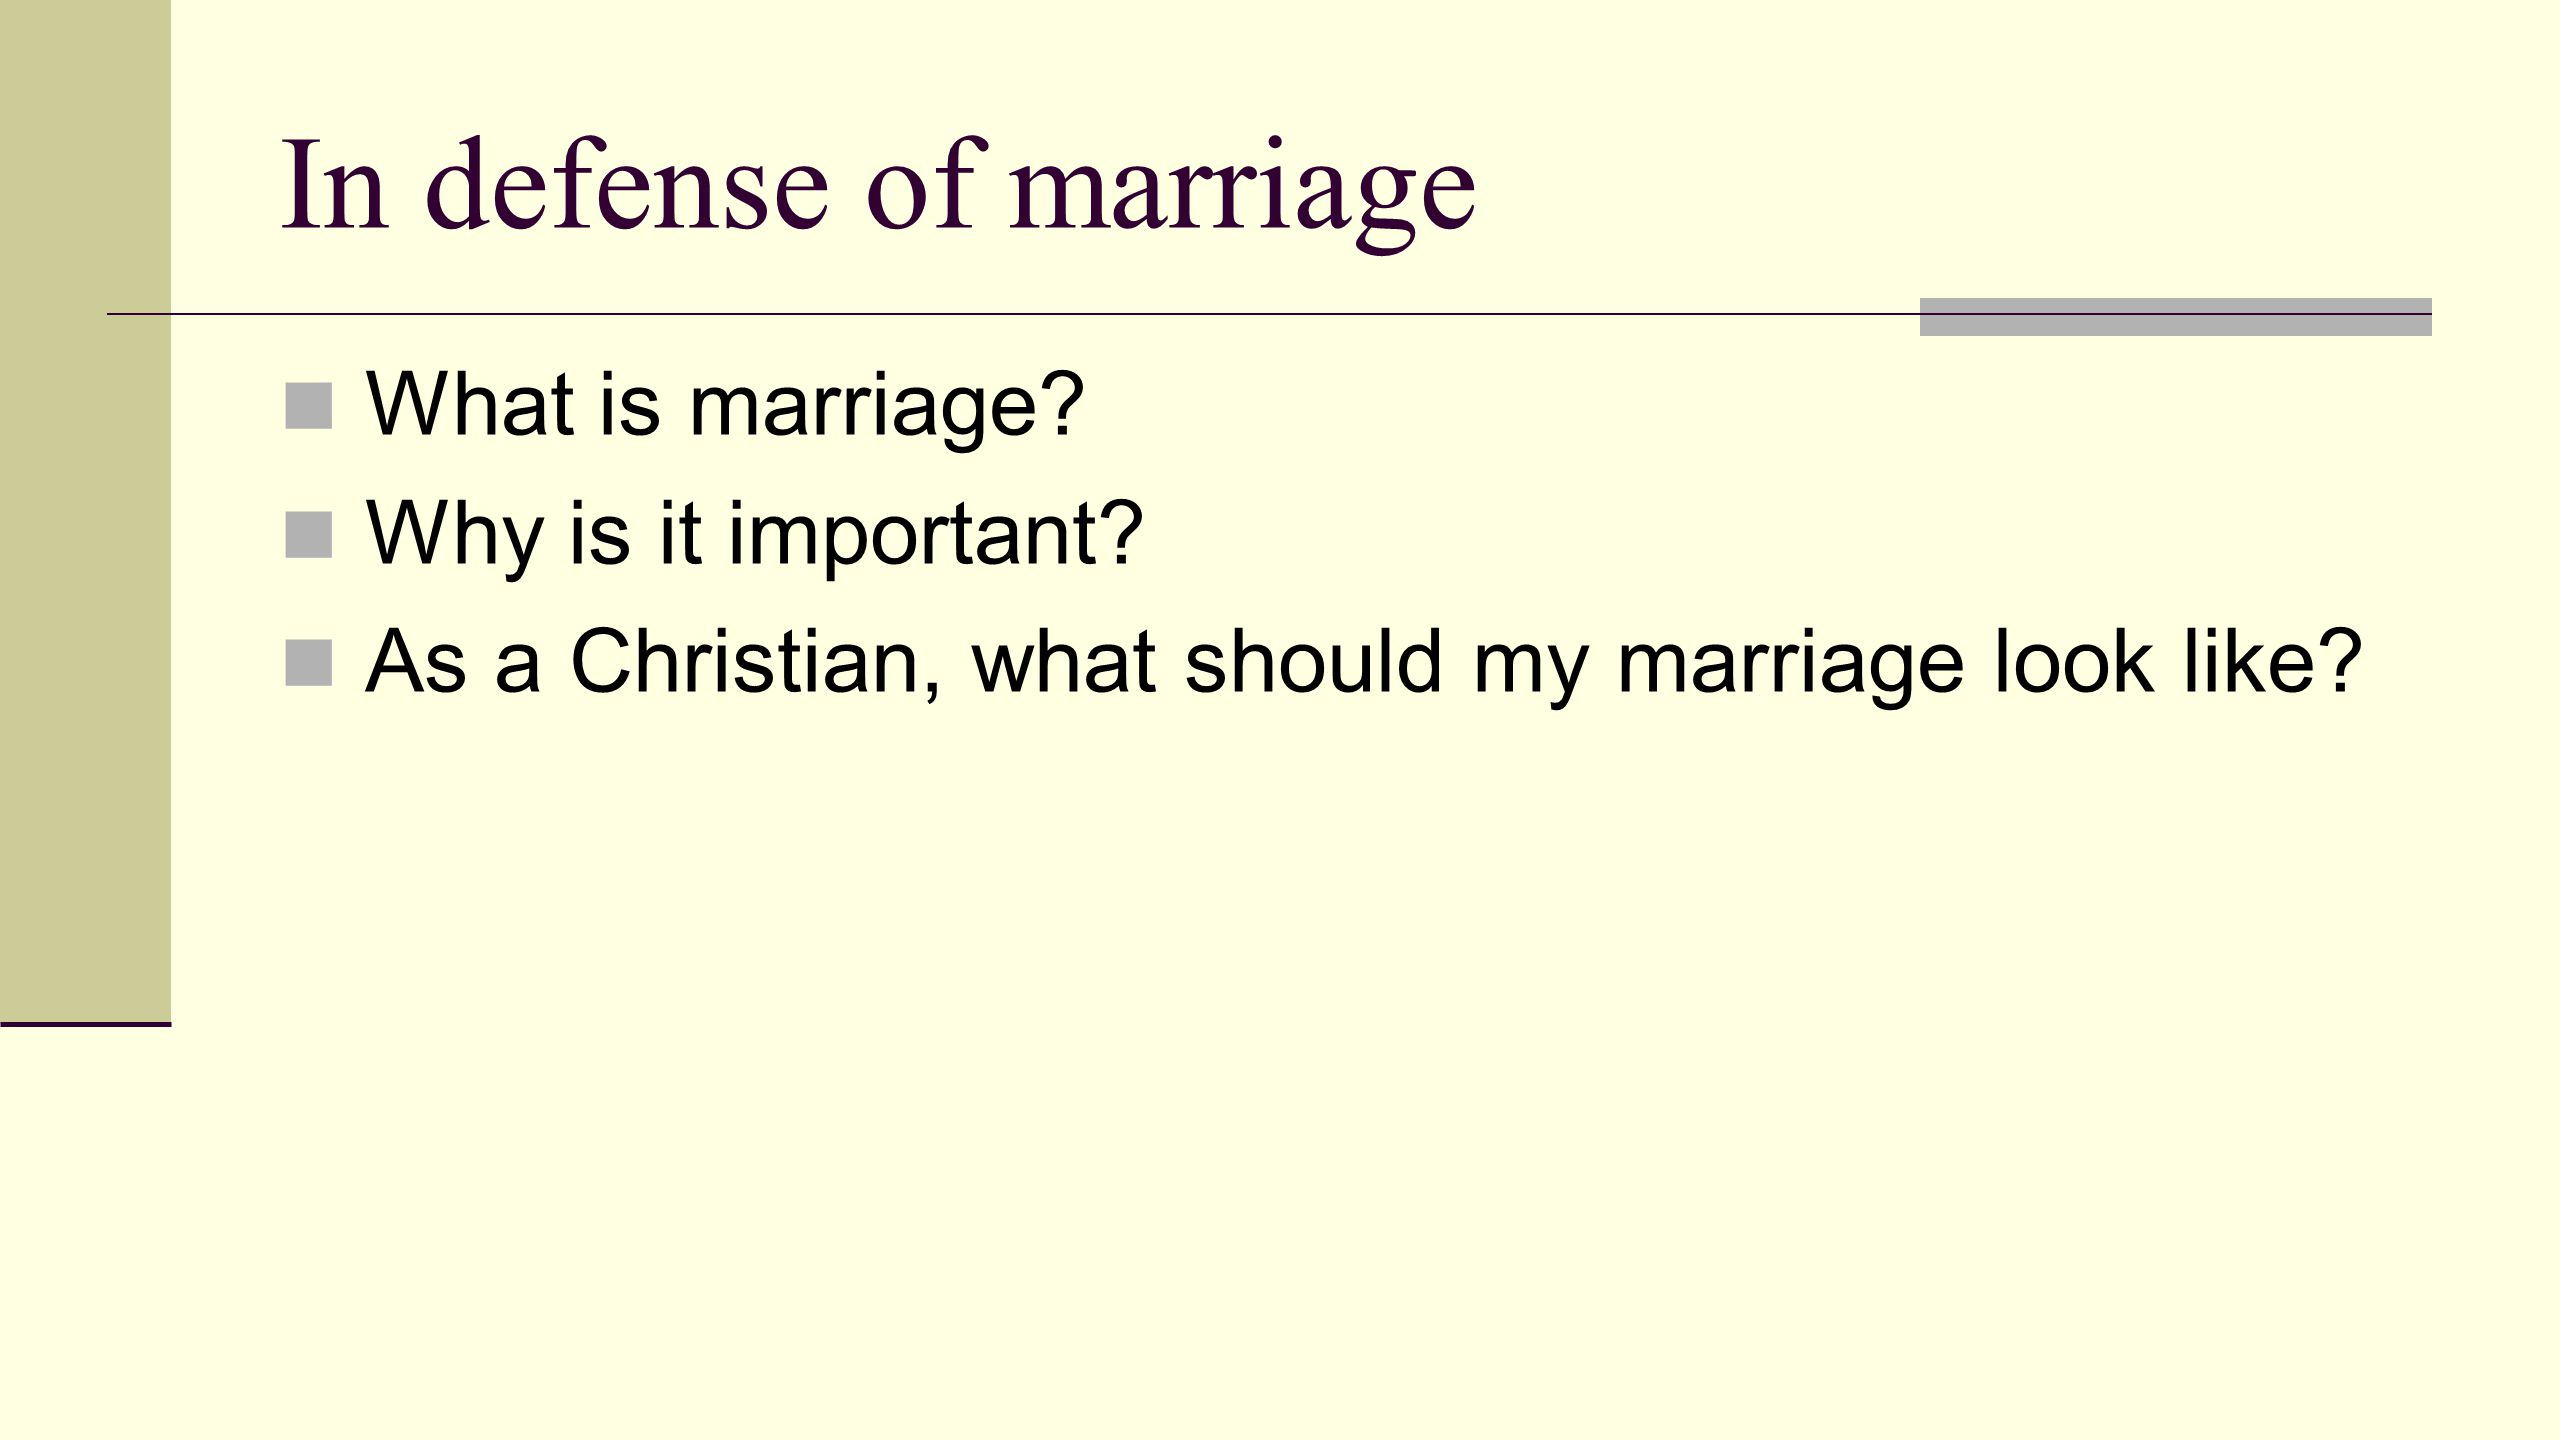 In defense of marriage What is marriage? Why is it important? As a Christian, what should my marriage look like?